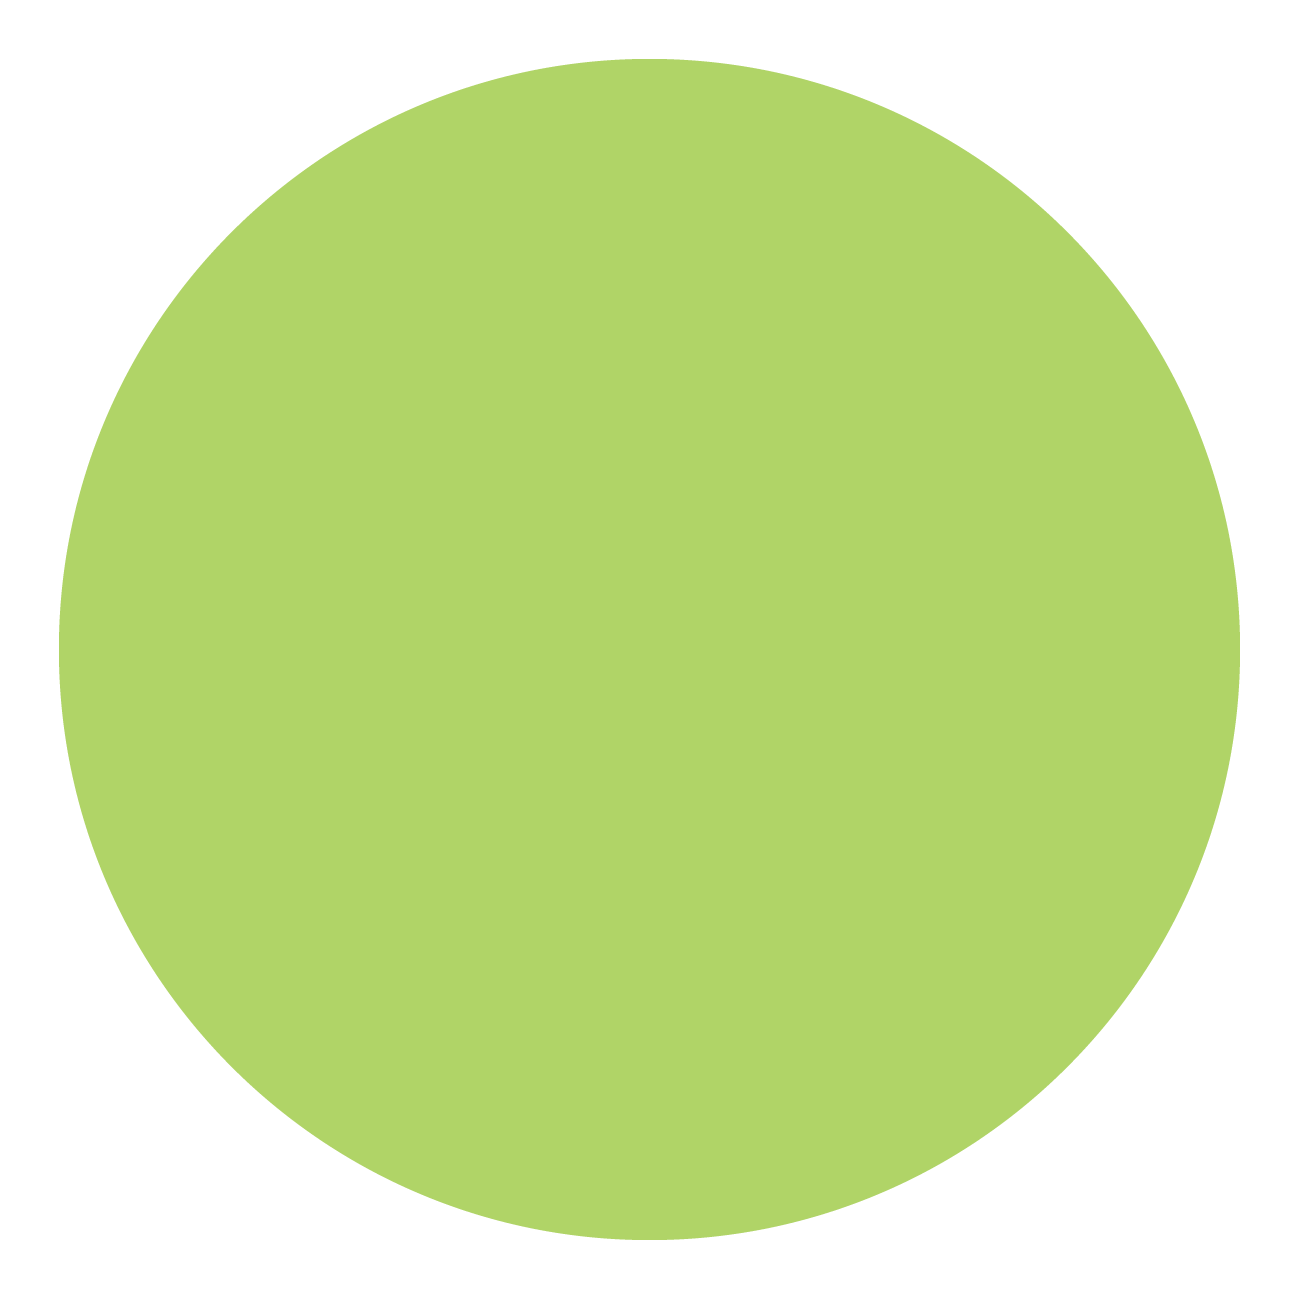 Green circle png. Free icons and backgrounds